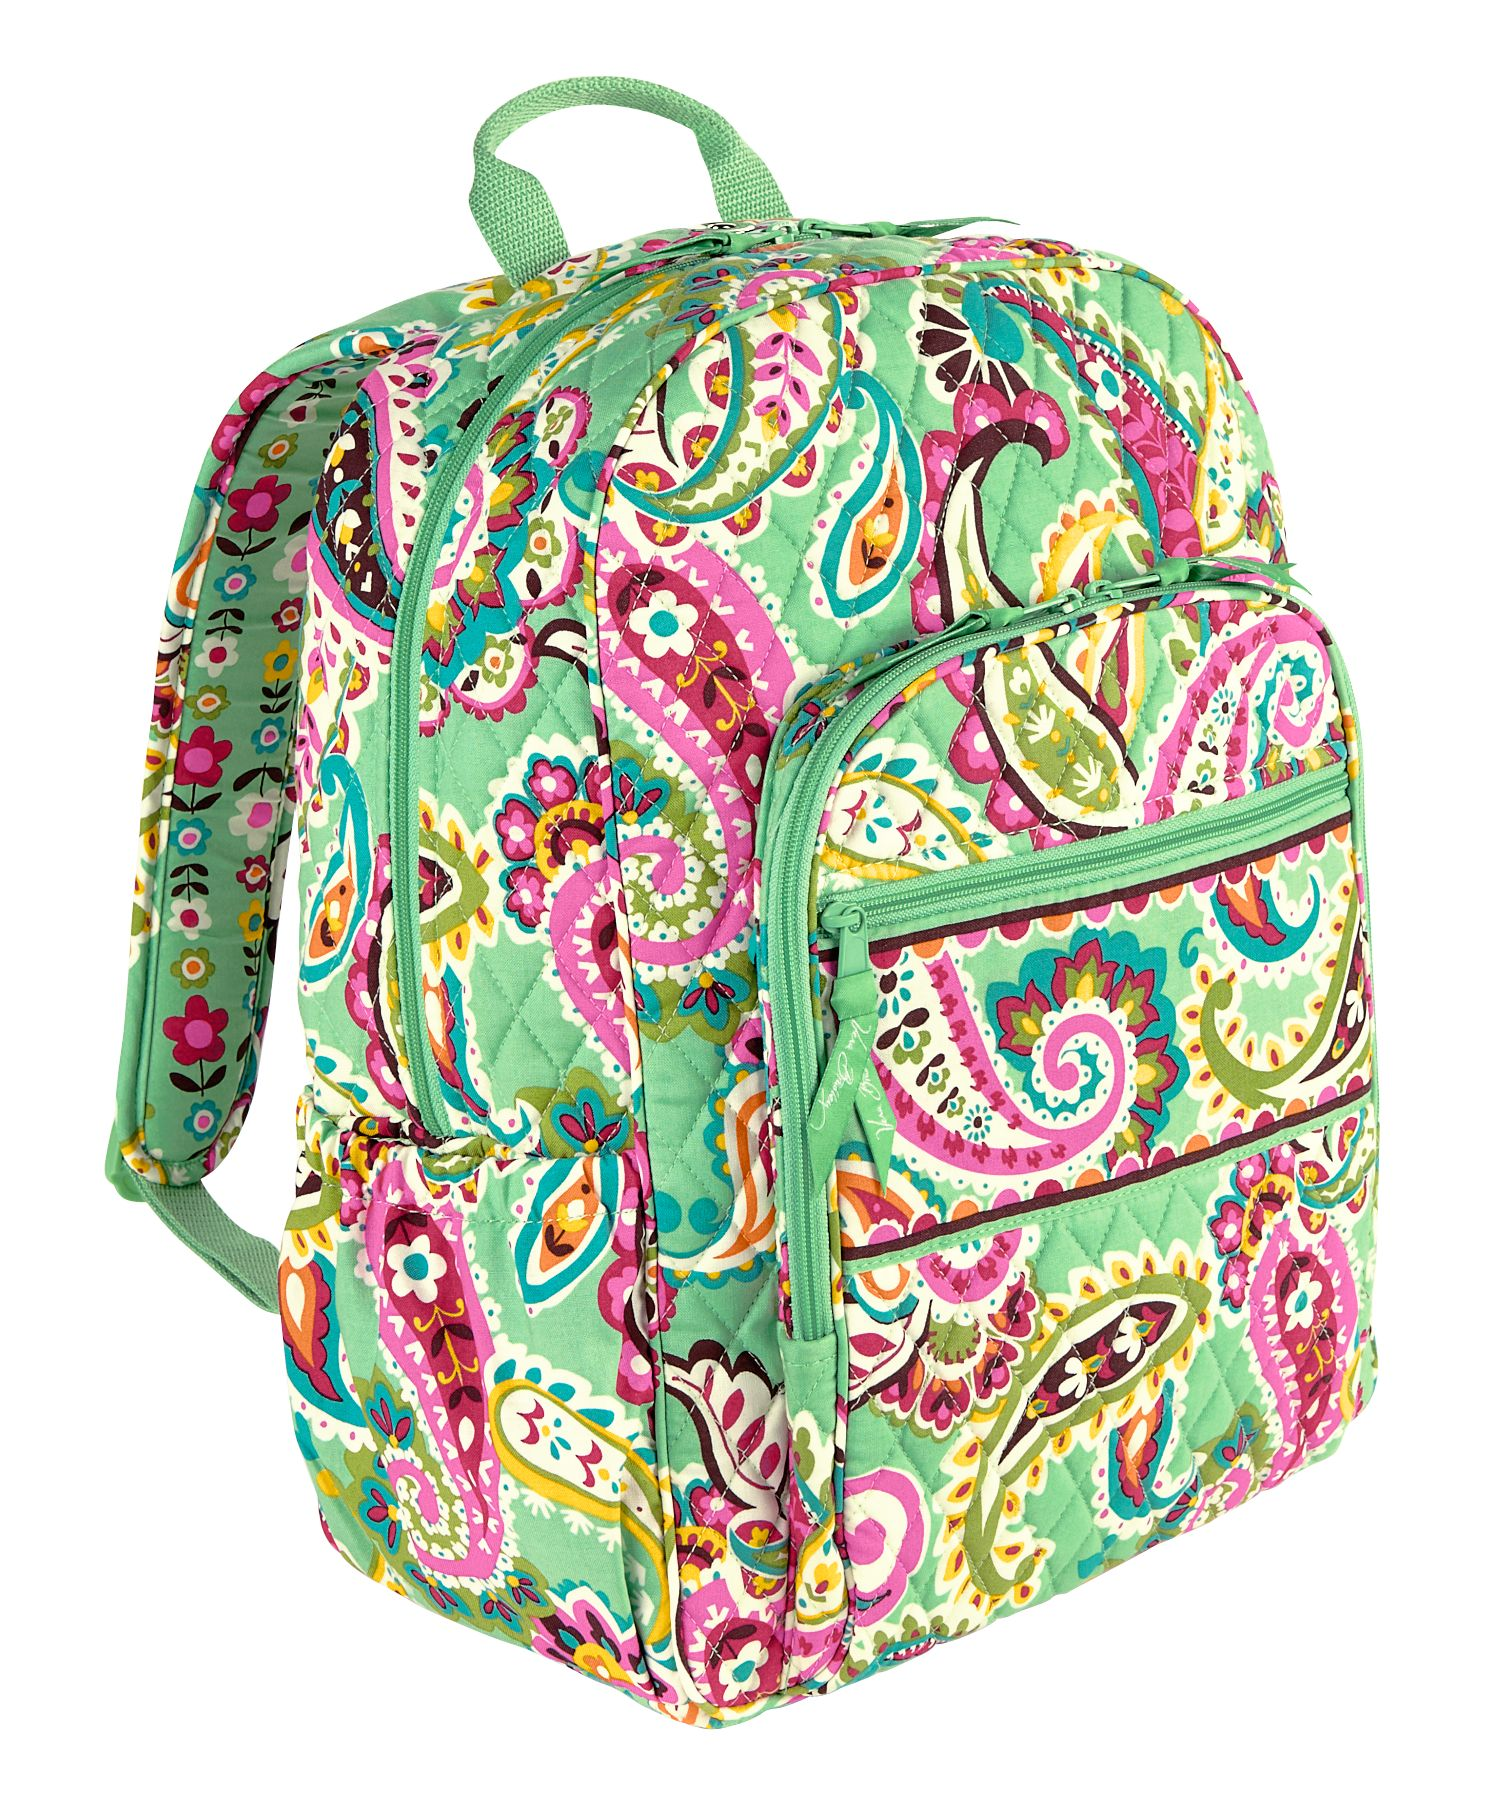 9ab4cb424755 Where To Buy Vera Bradley Backpacks- Fenix Toulouse Handball